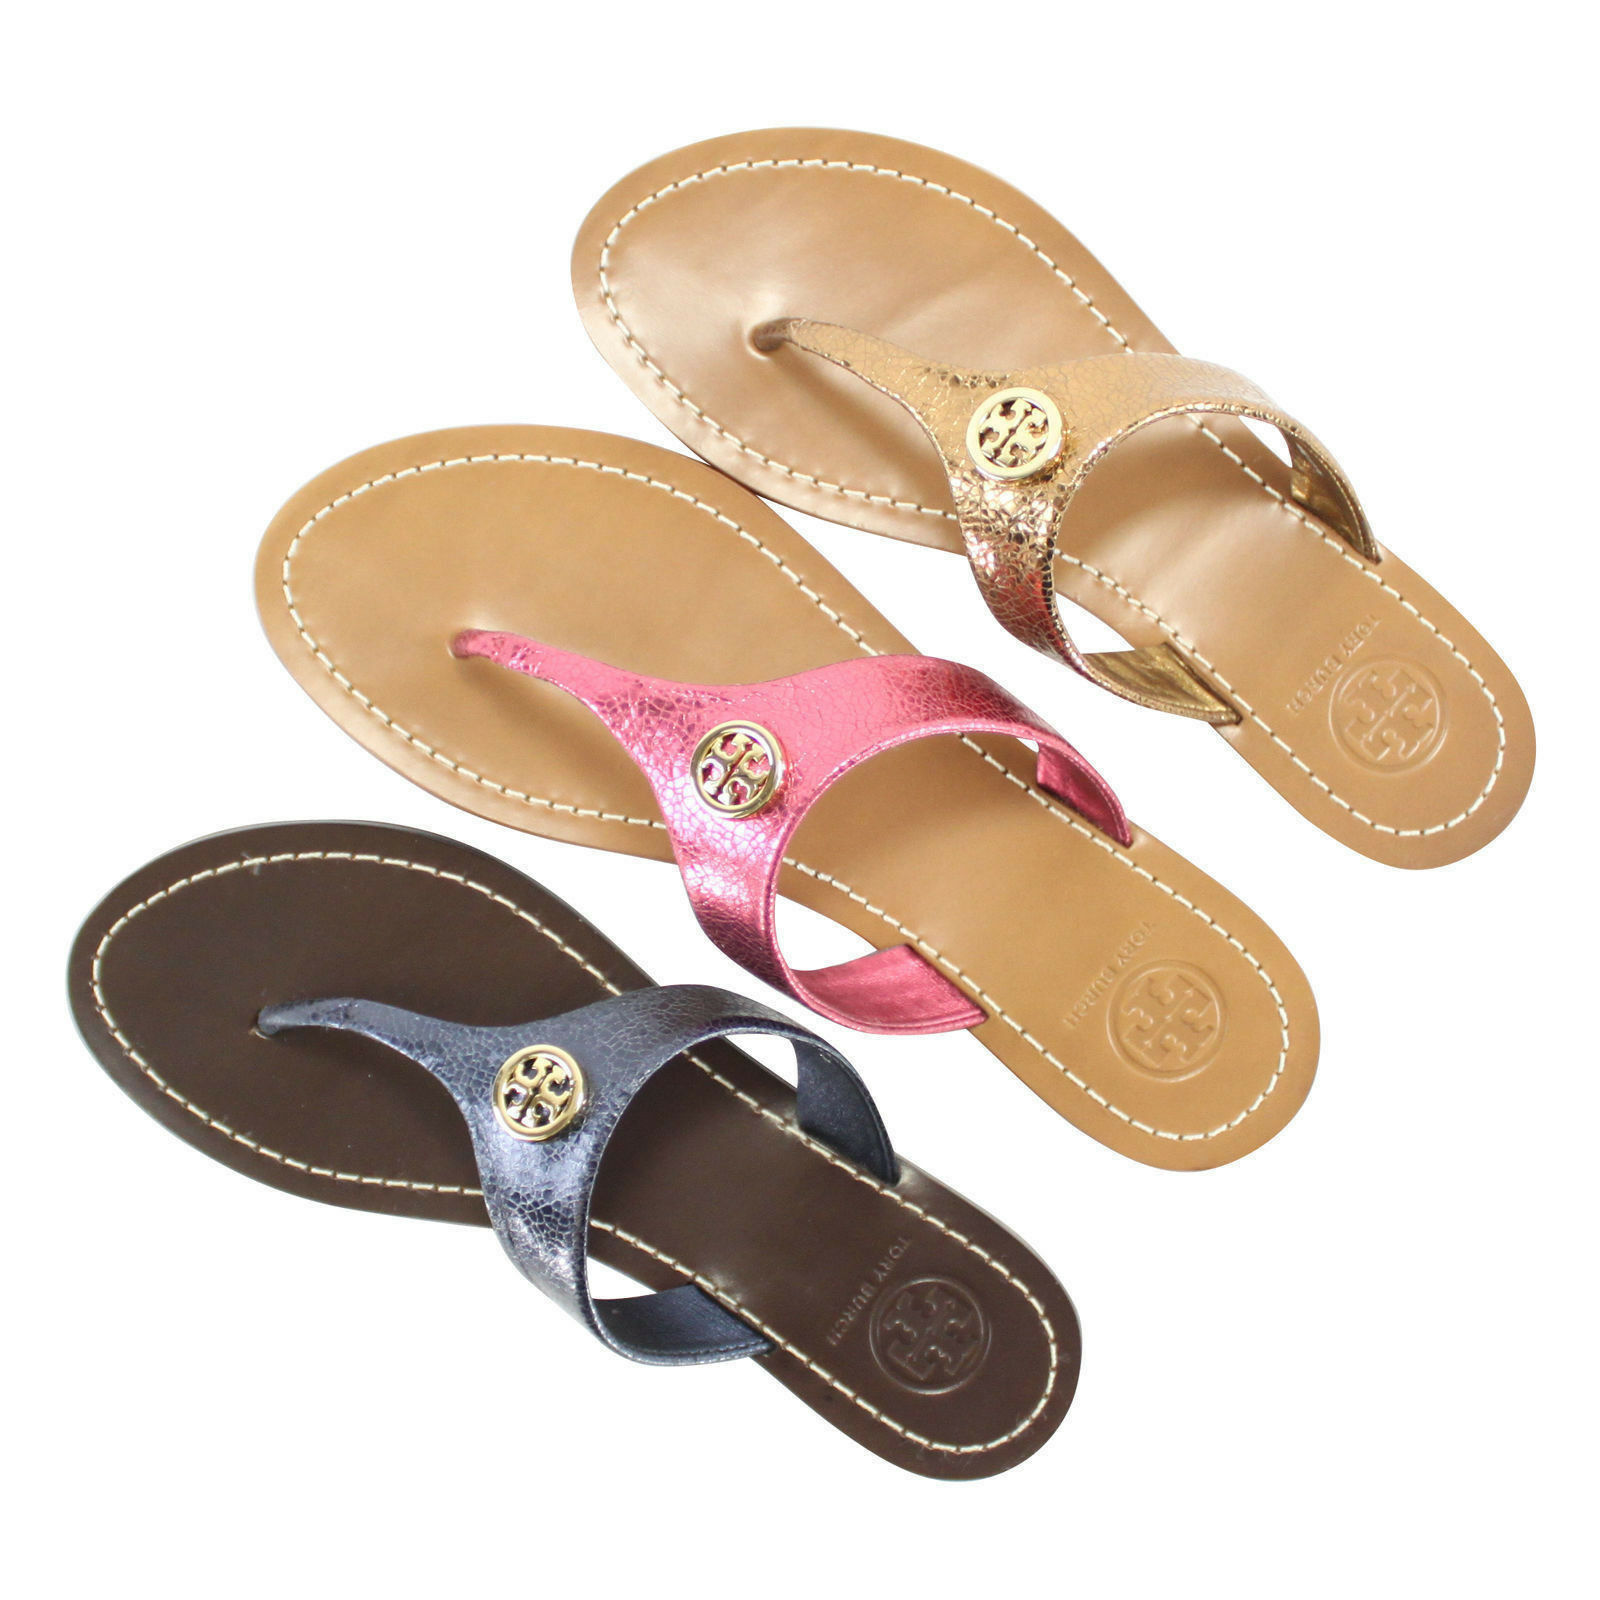 NEW Tory Burch CAMERON Thong Mirror Metallic Sandals 5-8.5